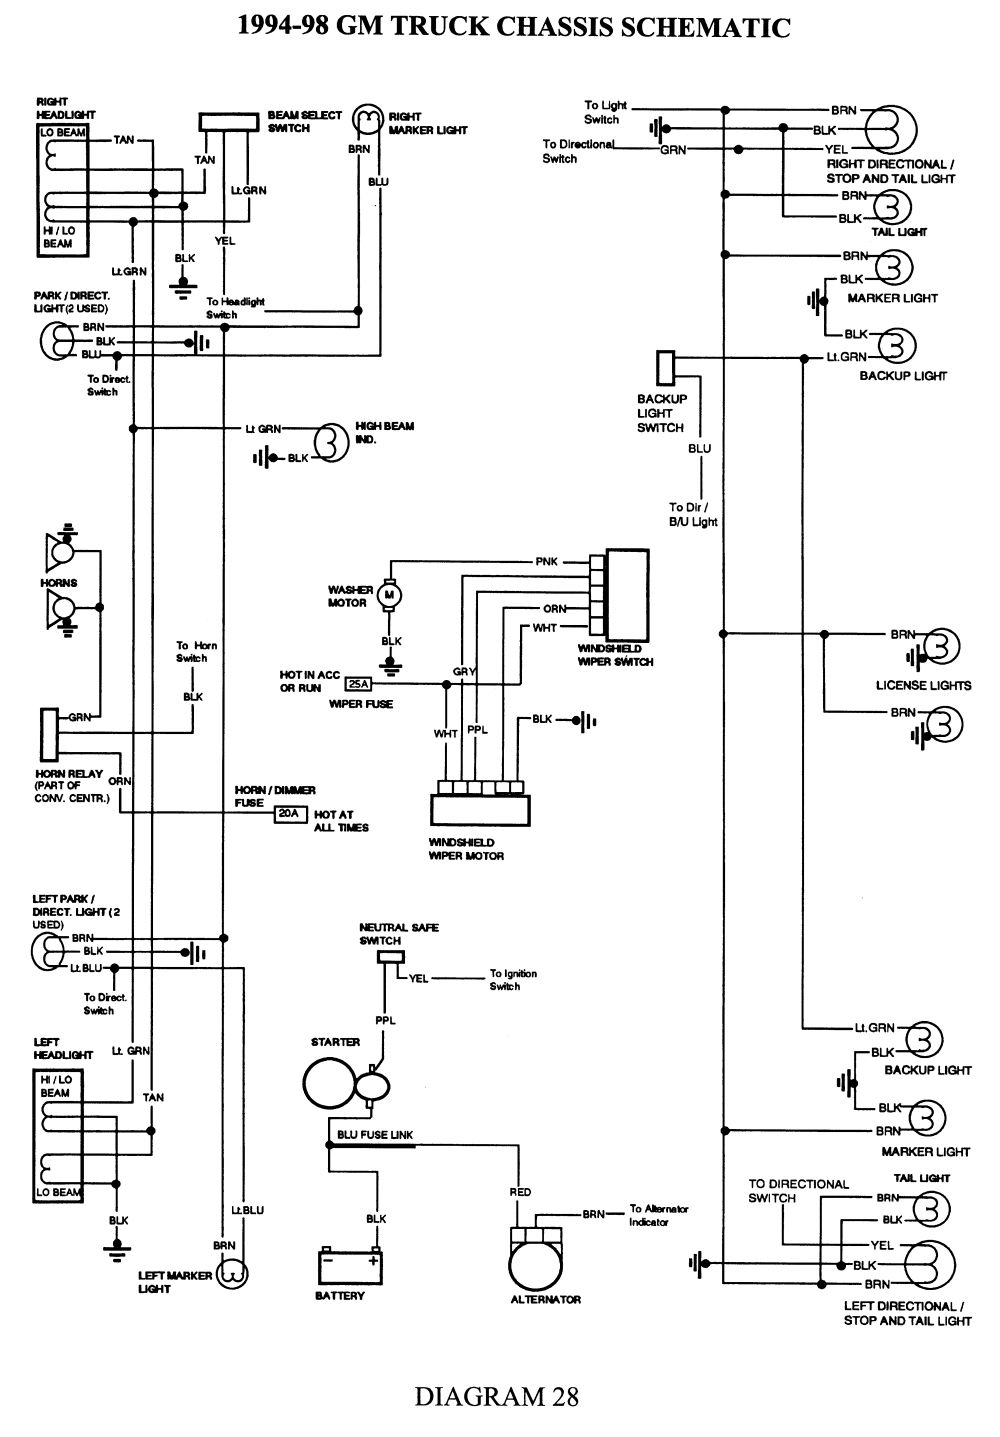 hight resolution of 1984 gmc wiring diagram wiring diagram repair guideswiring diagrams for a 1984 gmc 1500 21